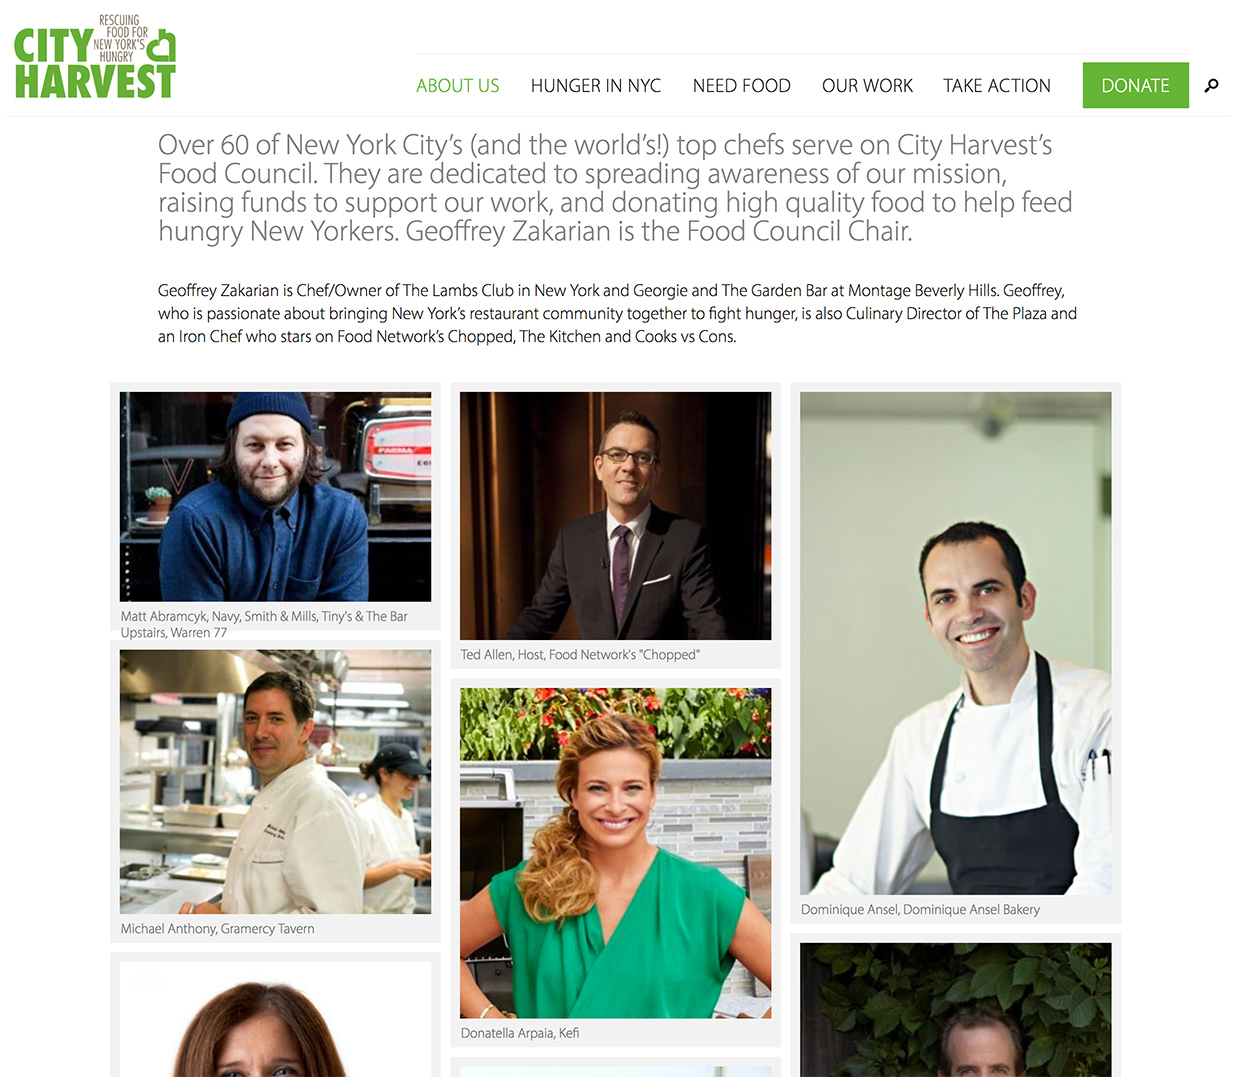 City Harvest: A masonry grid presents groups of people on the new site--in this case the City Harvest Food Council.